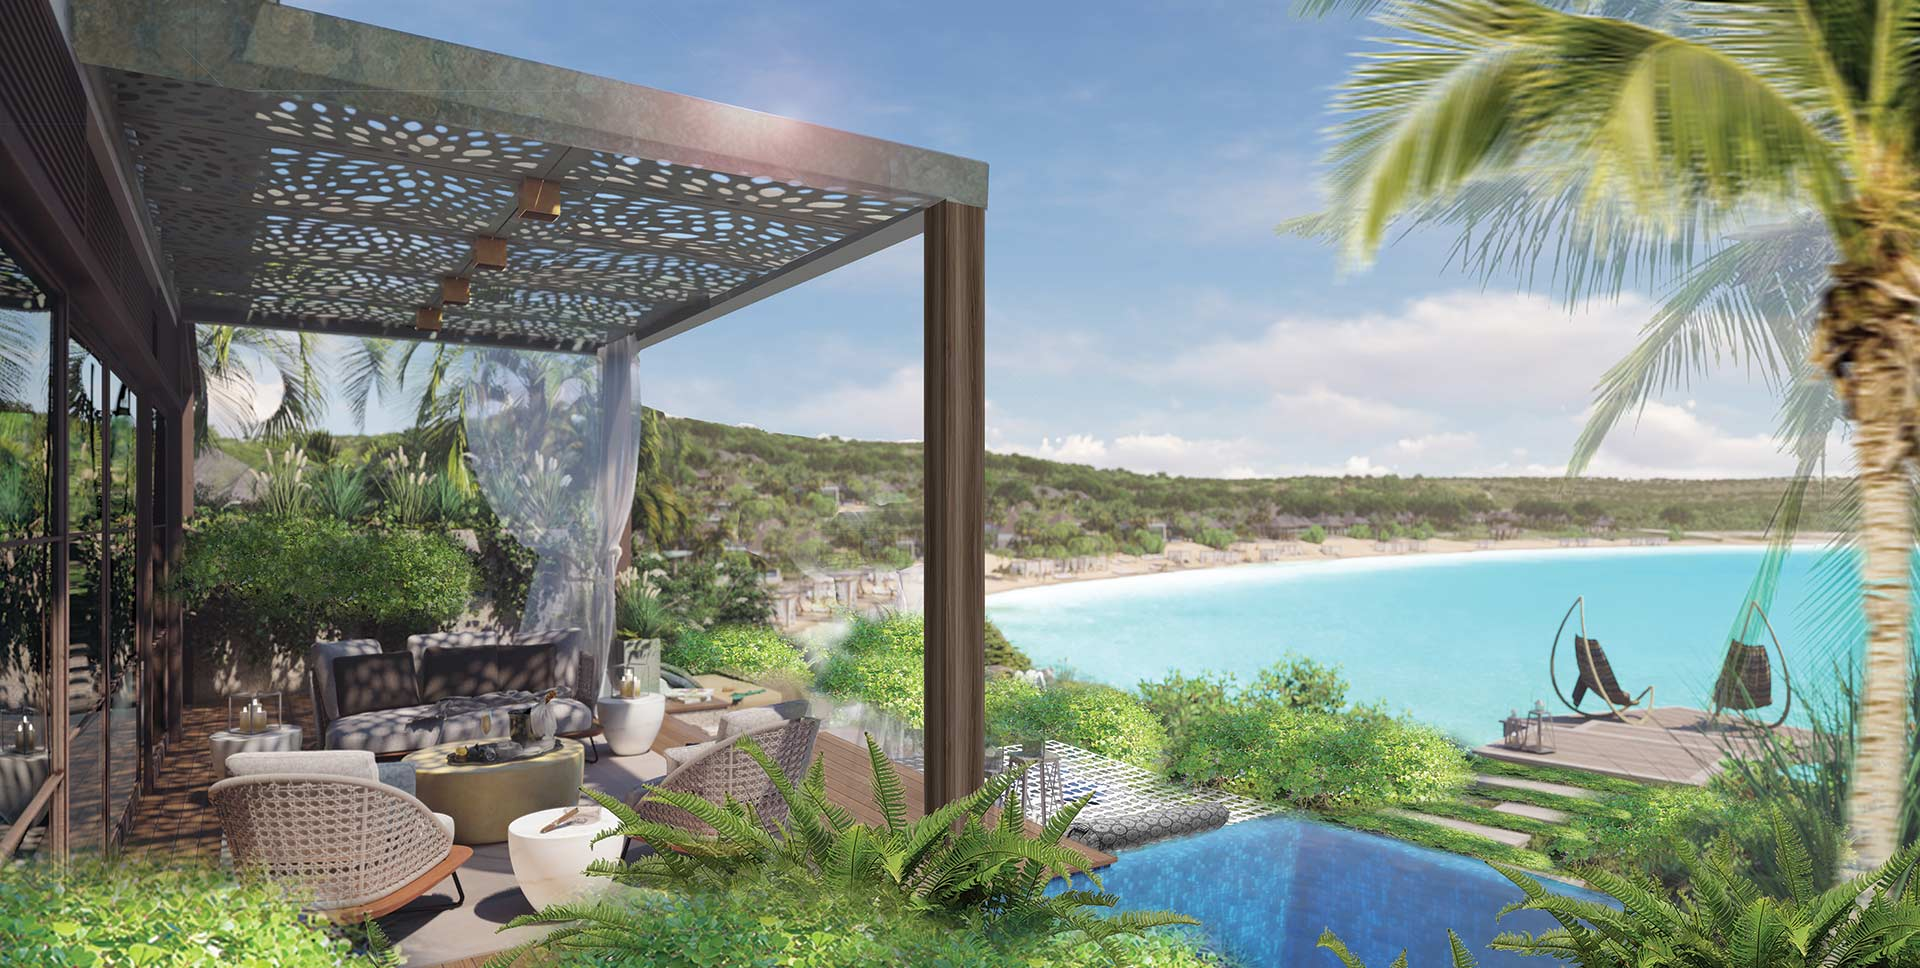 Rosewood Half Moon Bay Antigua to Open in 2021